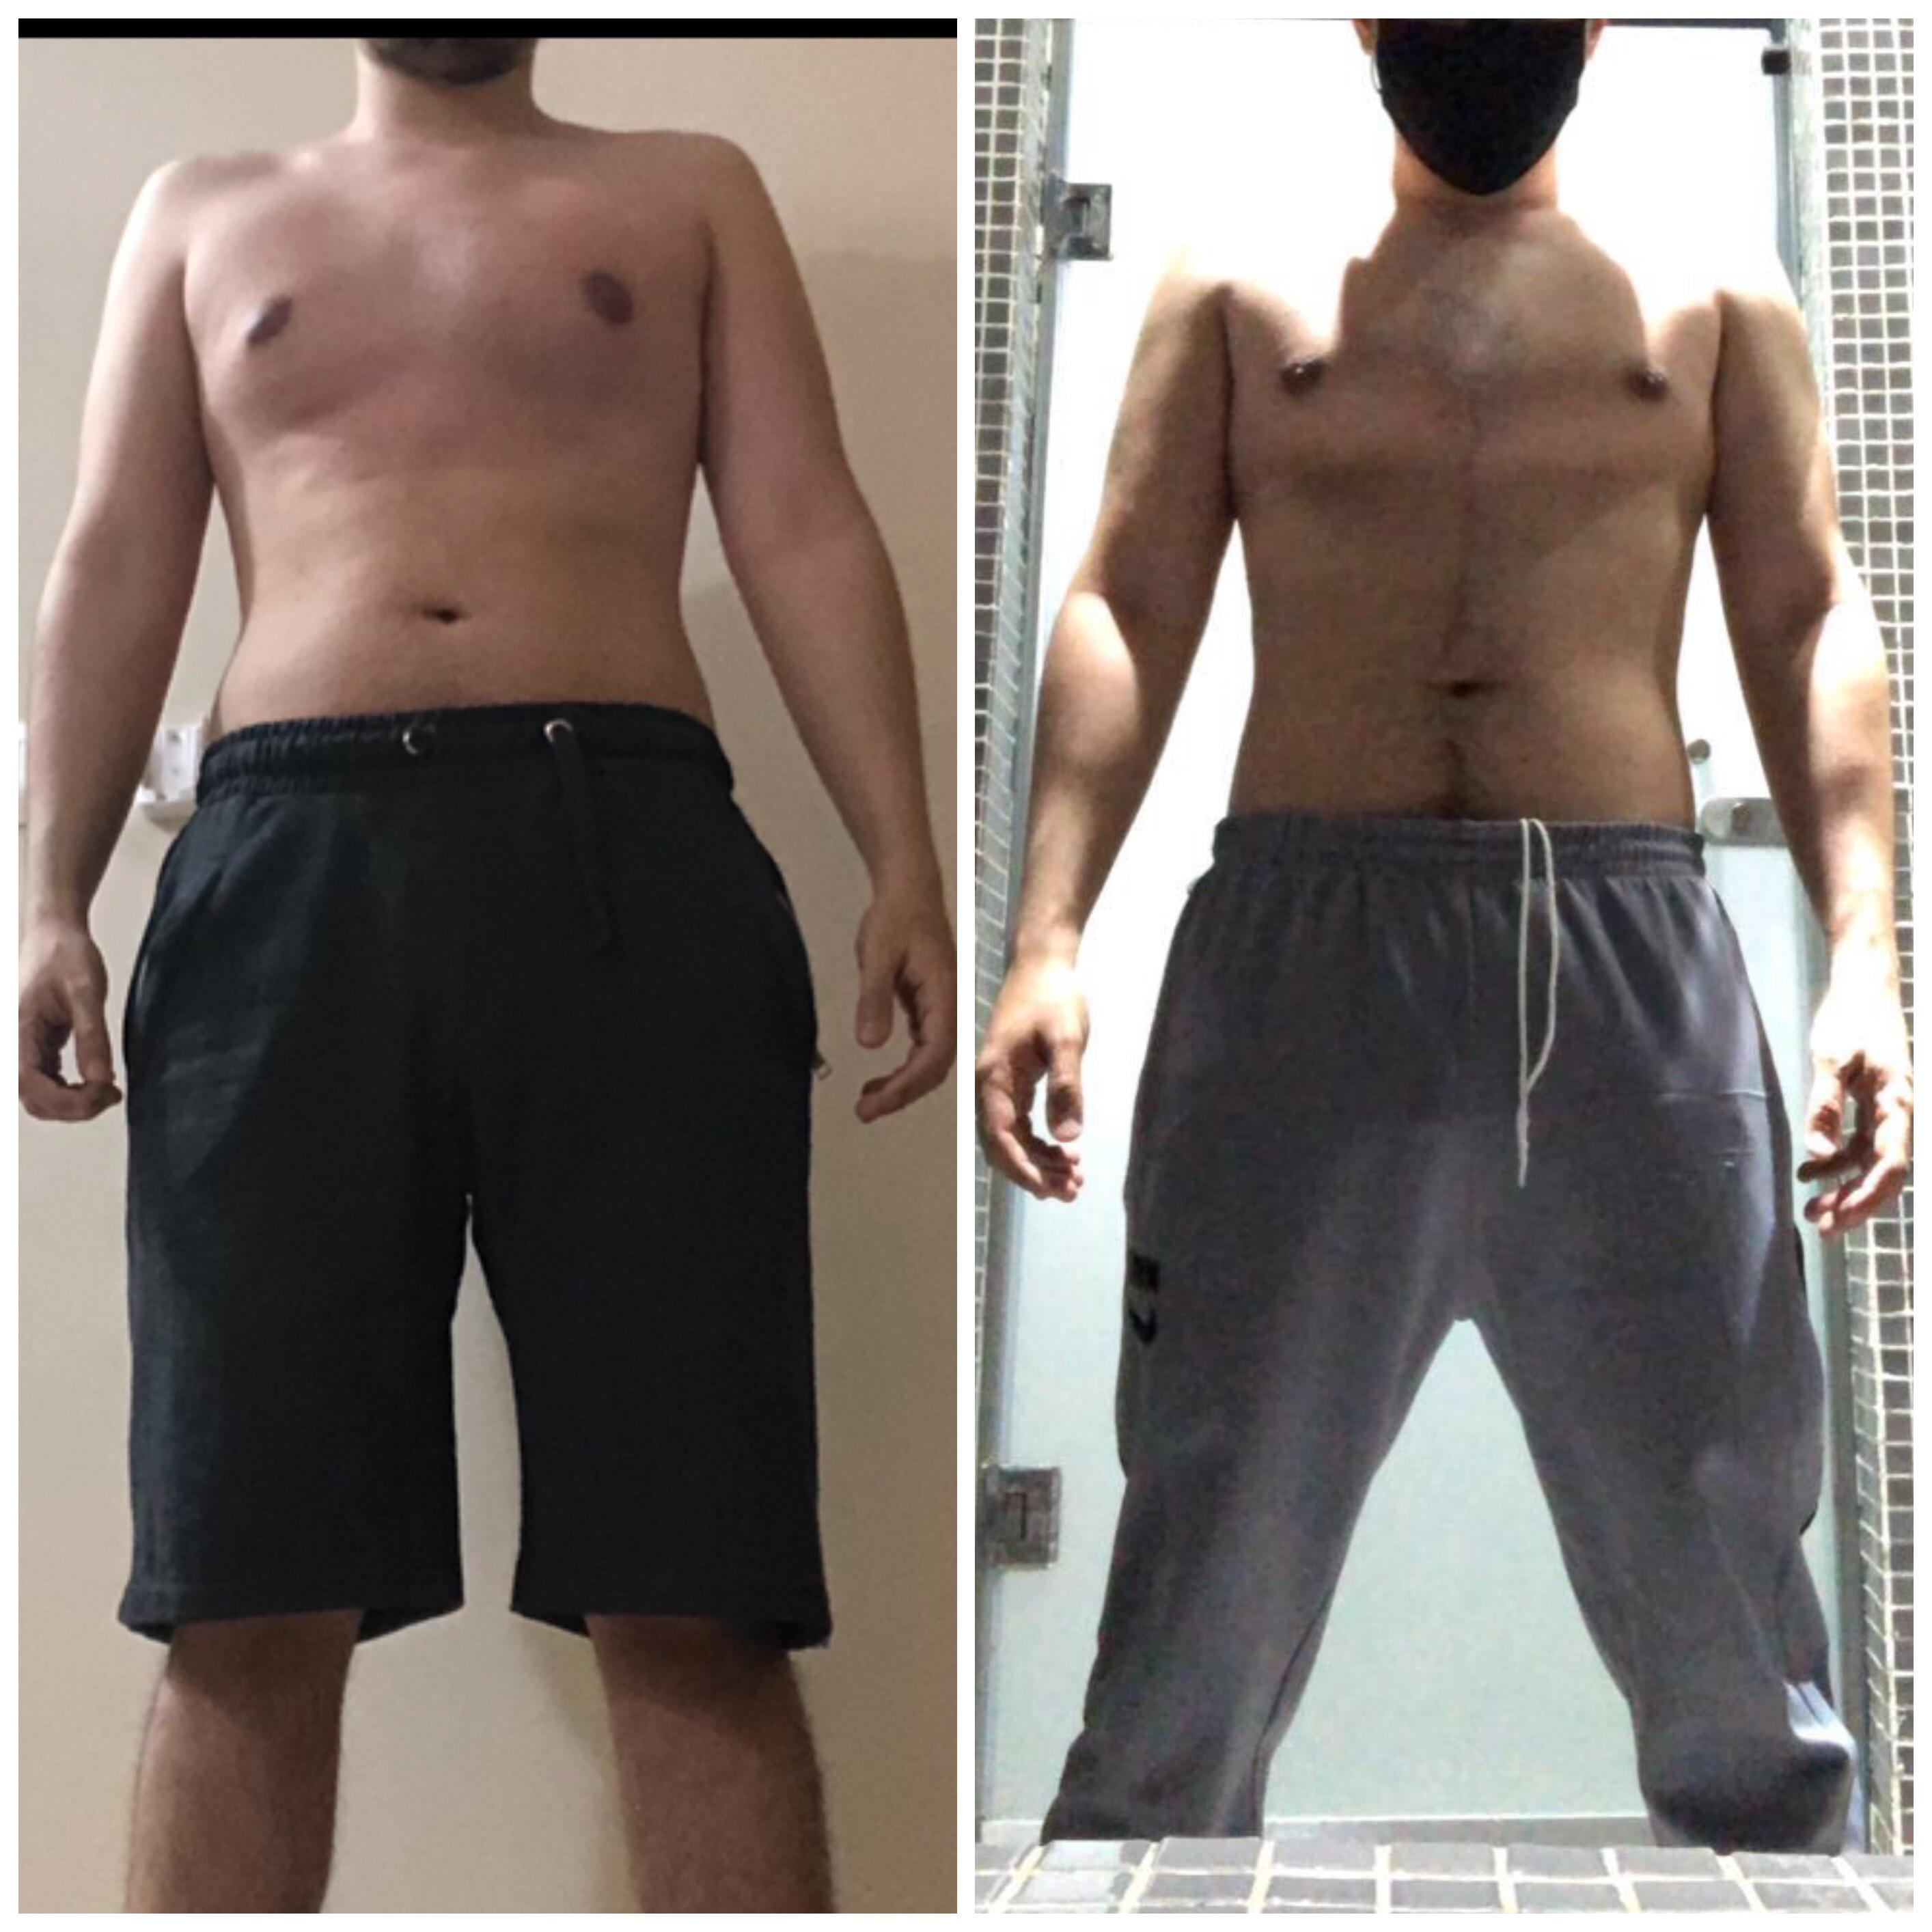 Before and After 3 lbs Weight Loss 5 foot 5 Male 150 lbs to 147 lbs